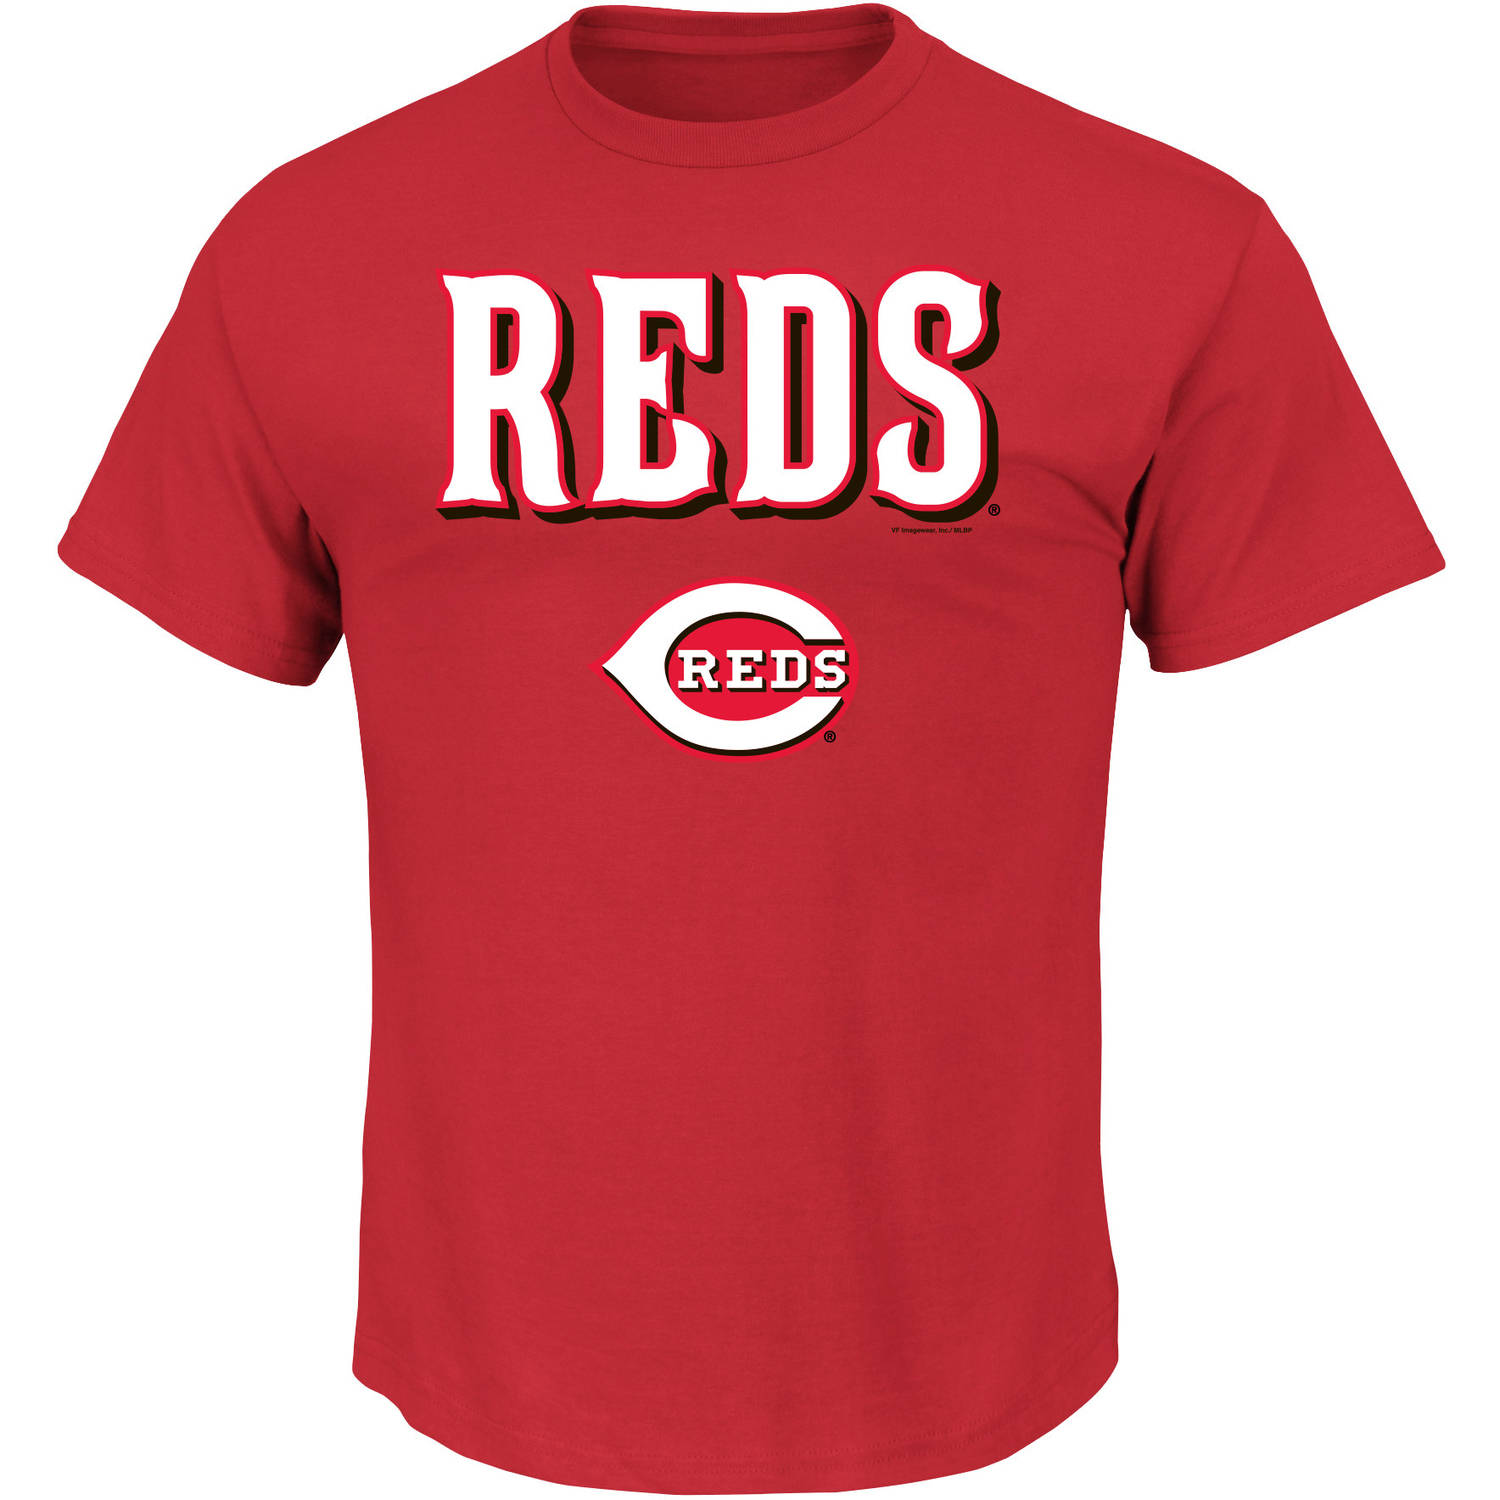 Big Men's MLB Cincinnati Reds Team Tee